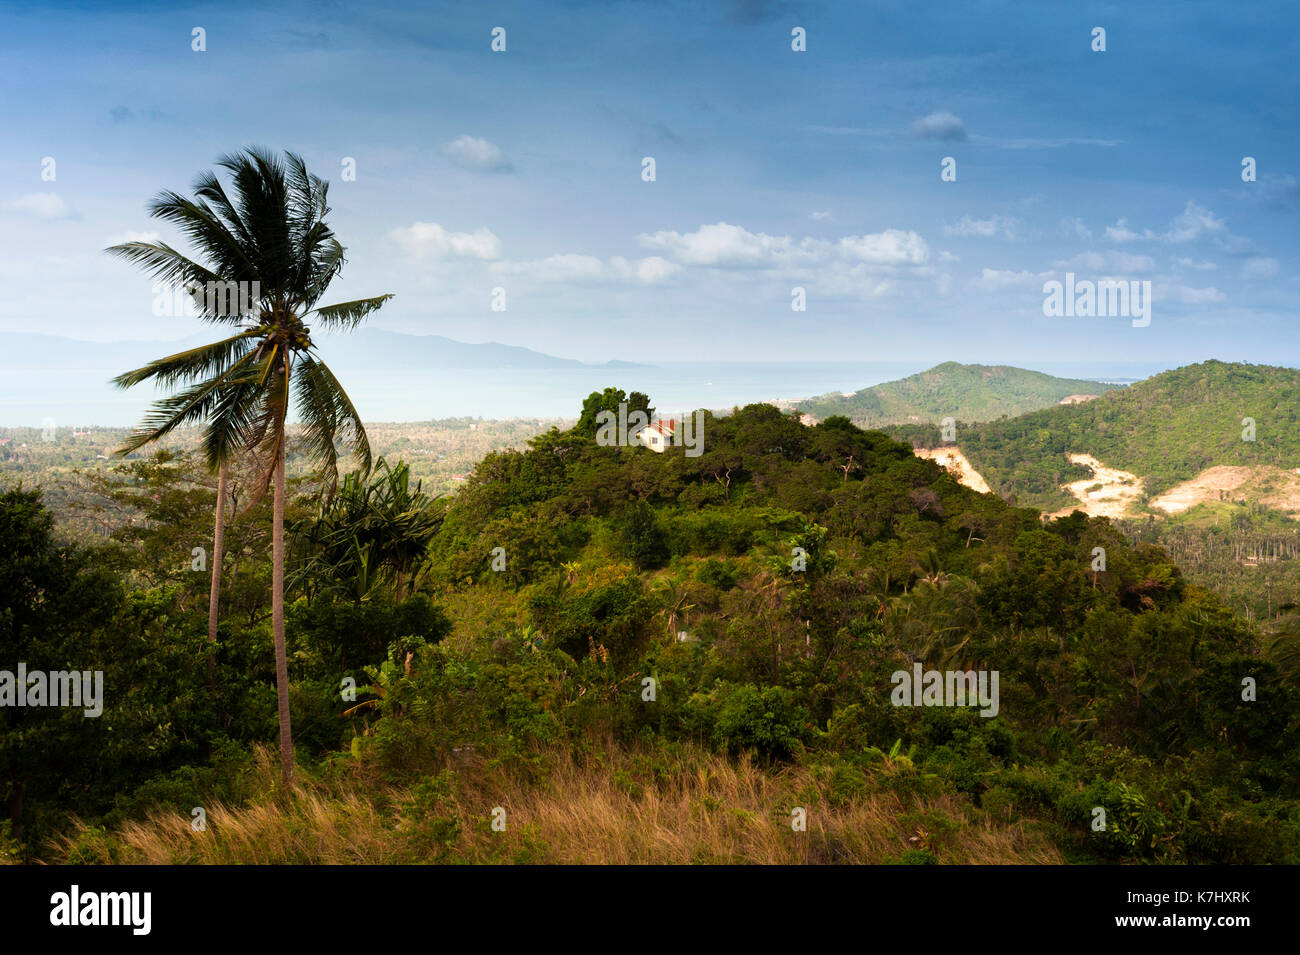 House with a view on the island of Koh Samui, Thailand - Stock Image